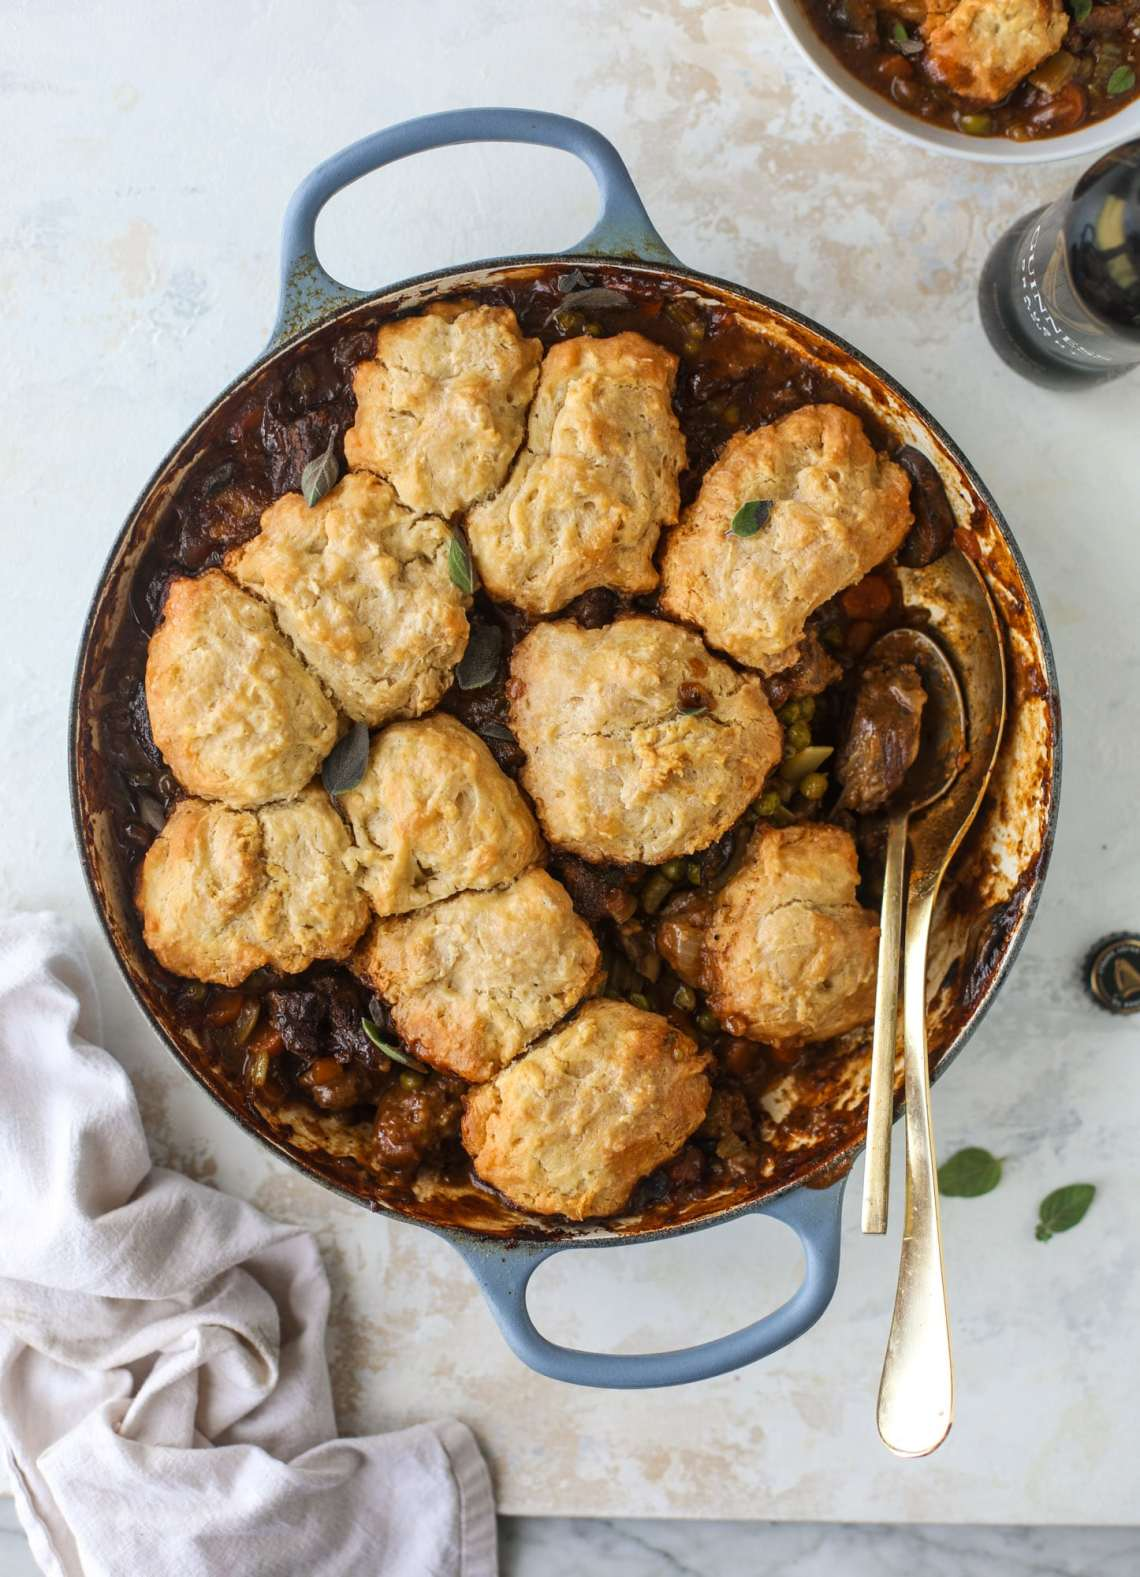 11 of my favorite Saint Patrick's Day recipes are here, like soda bread with salted honey butter and guinness short ribs with cauliflower mash. I howsweeteats.com #stpatricksday #recipes